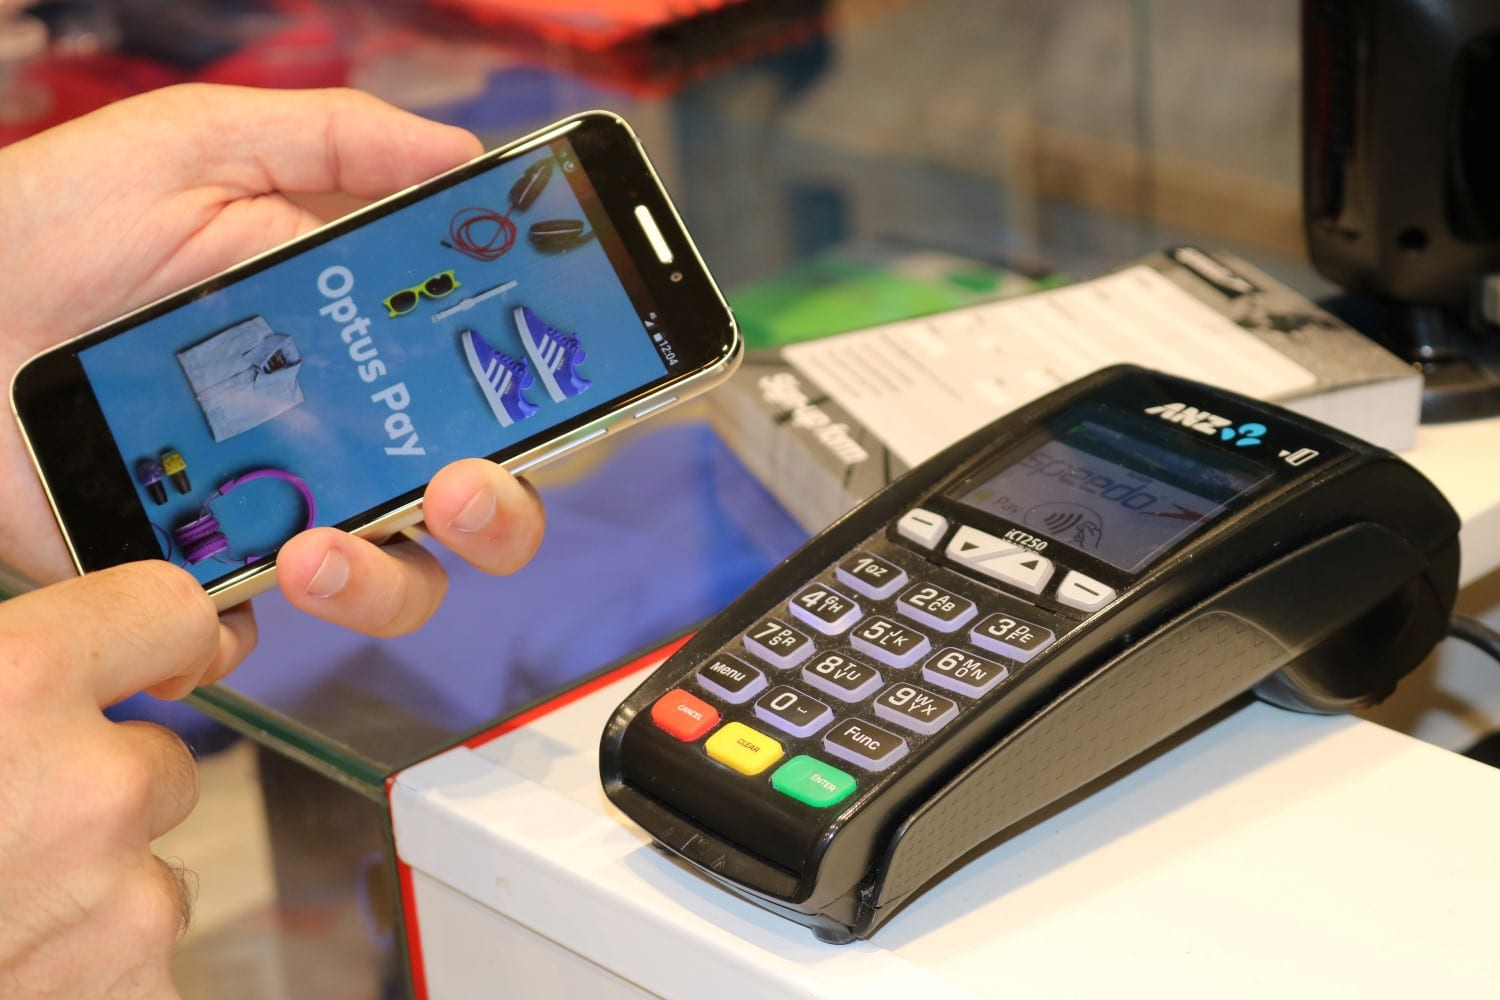 optus pay mobile in hand